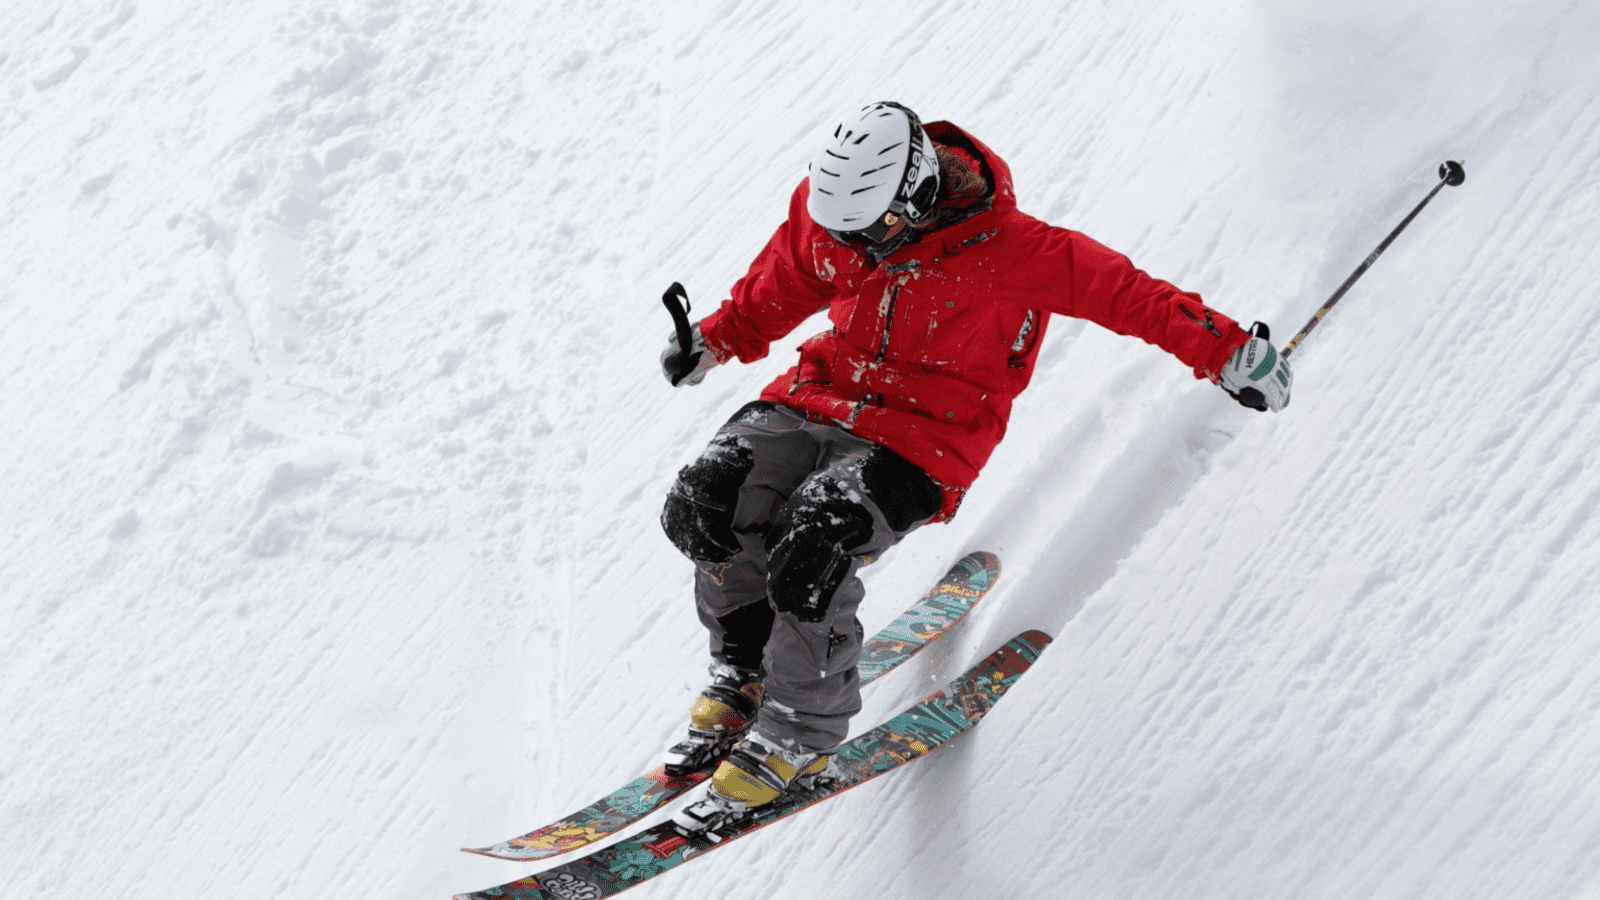 skiing during the pandemic safely - how to